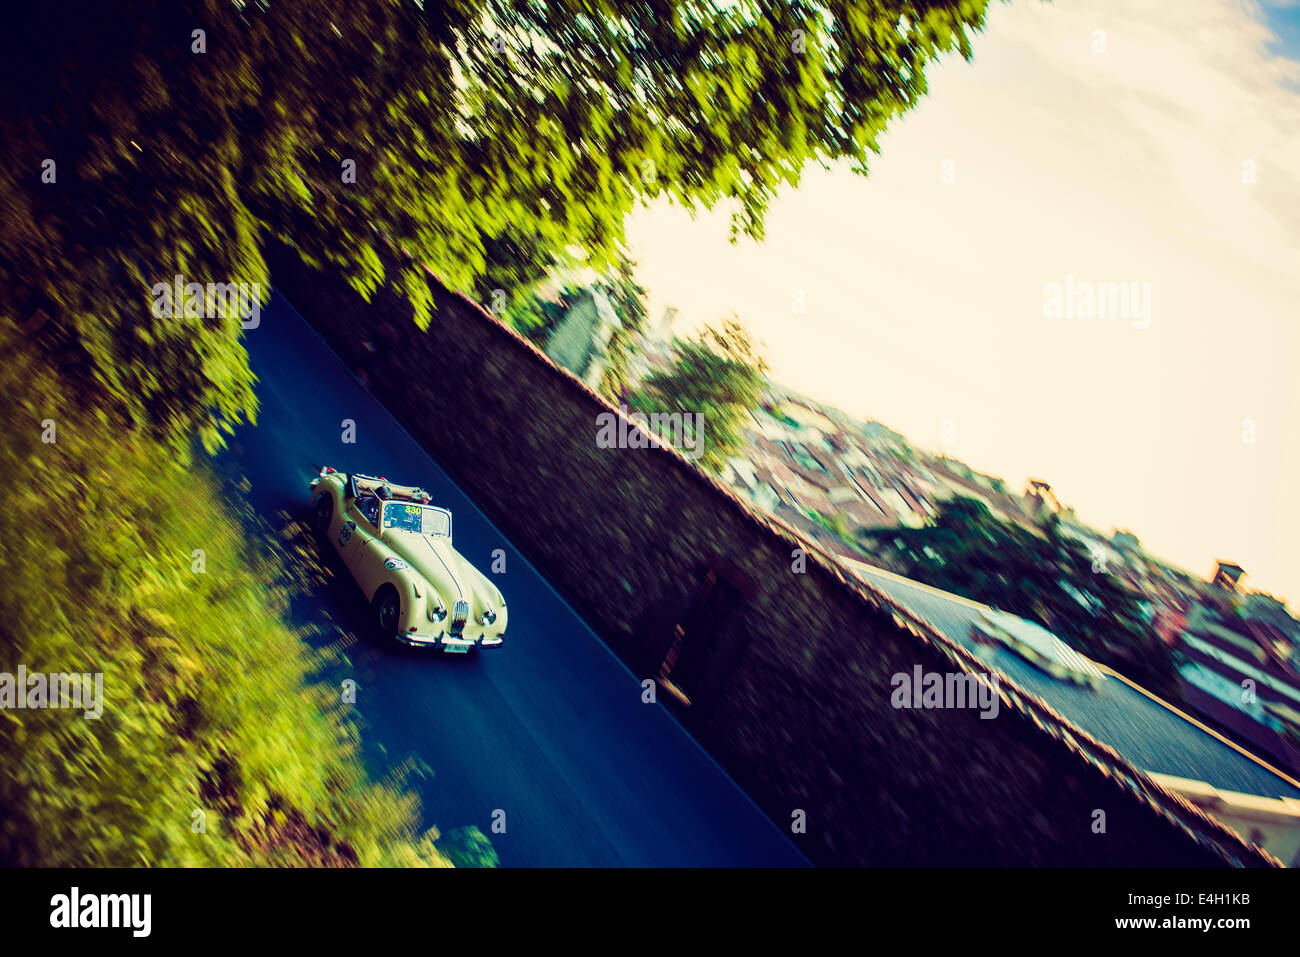 Jaguar XK140 DHC from 1955 at Mille Miglia - Classic Car Race, Brescia, Italy 2014 - Stock Image